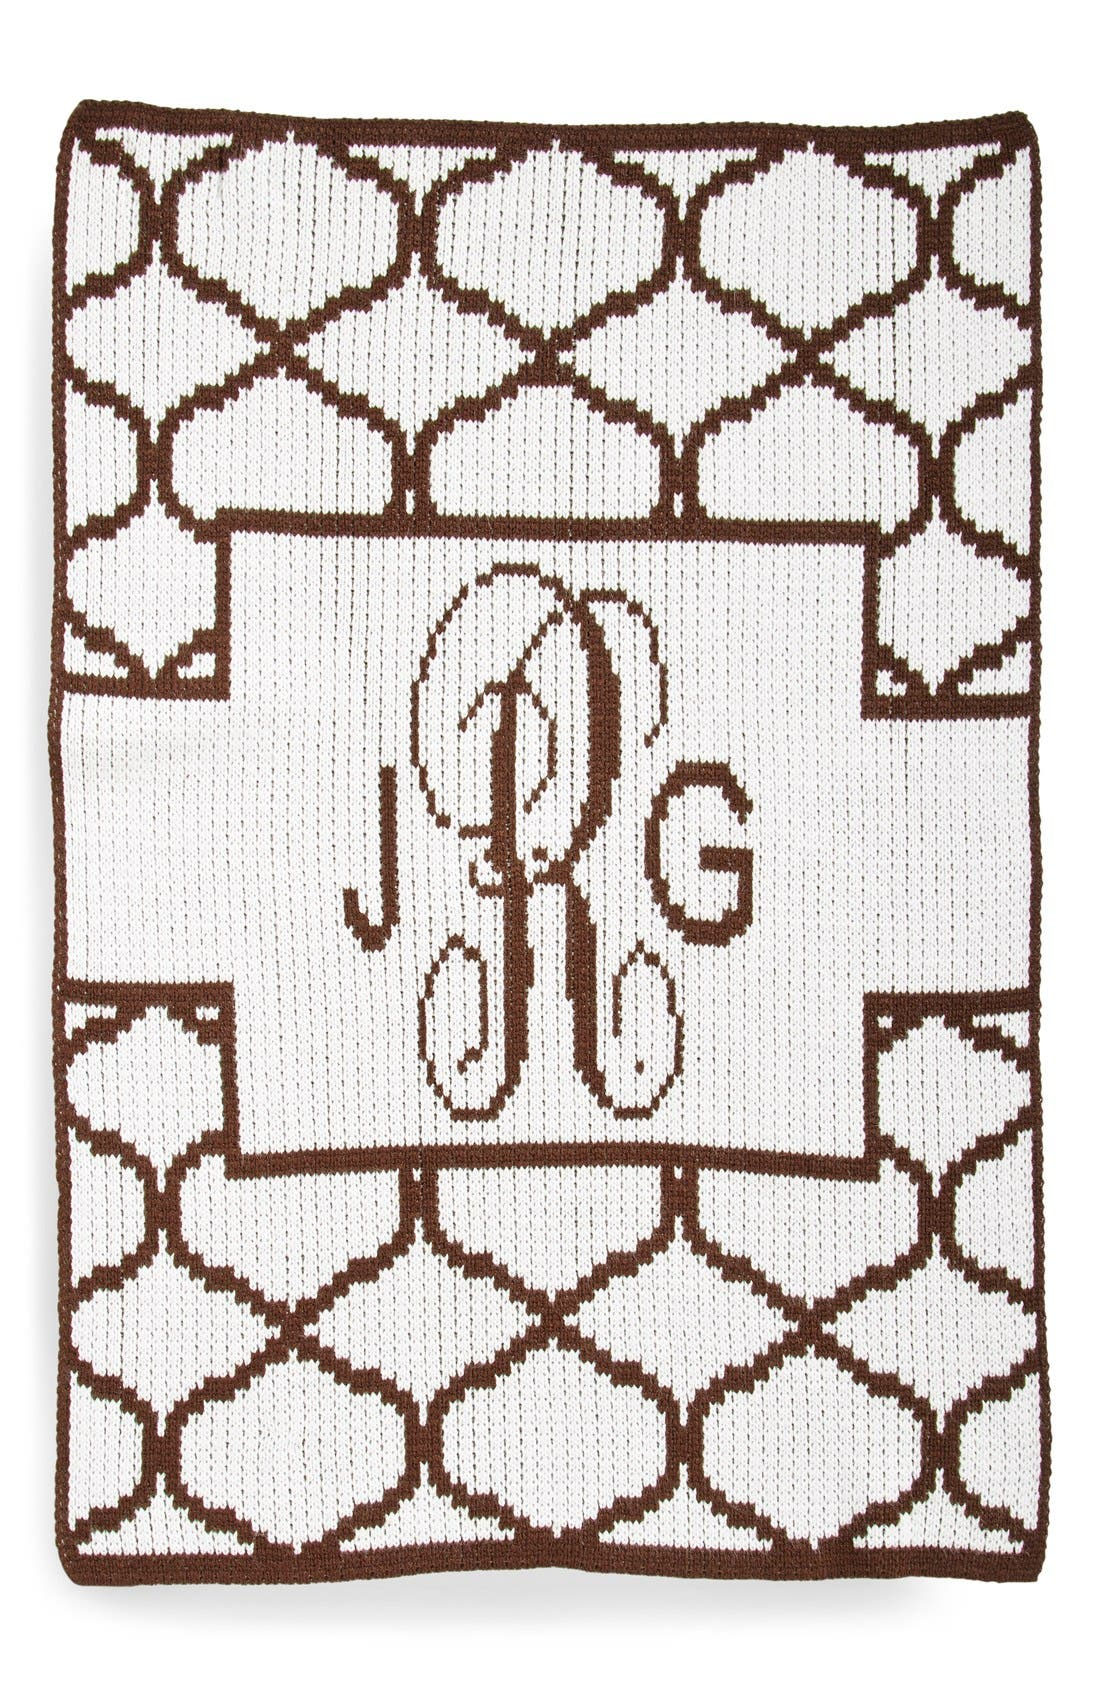 Lattice Personalized Blanket,                             Main thumbnail 1, color,                             WHITE/ BROWN